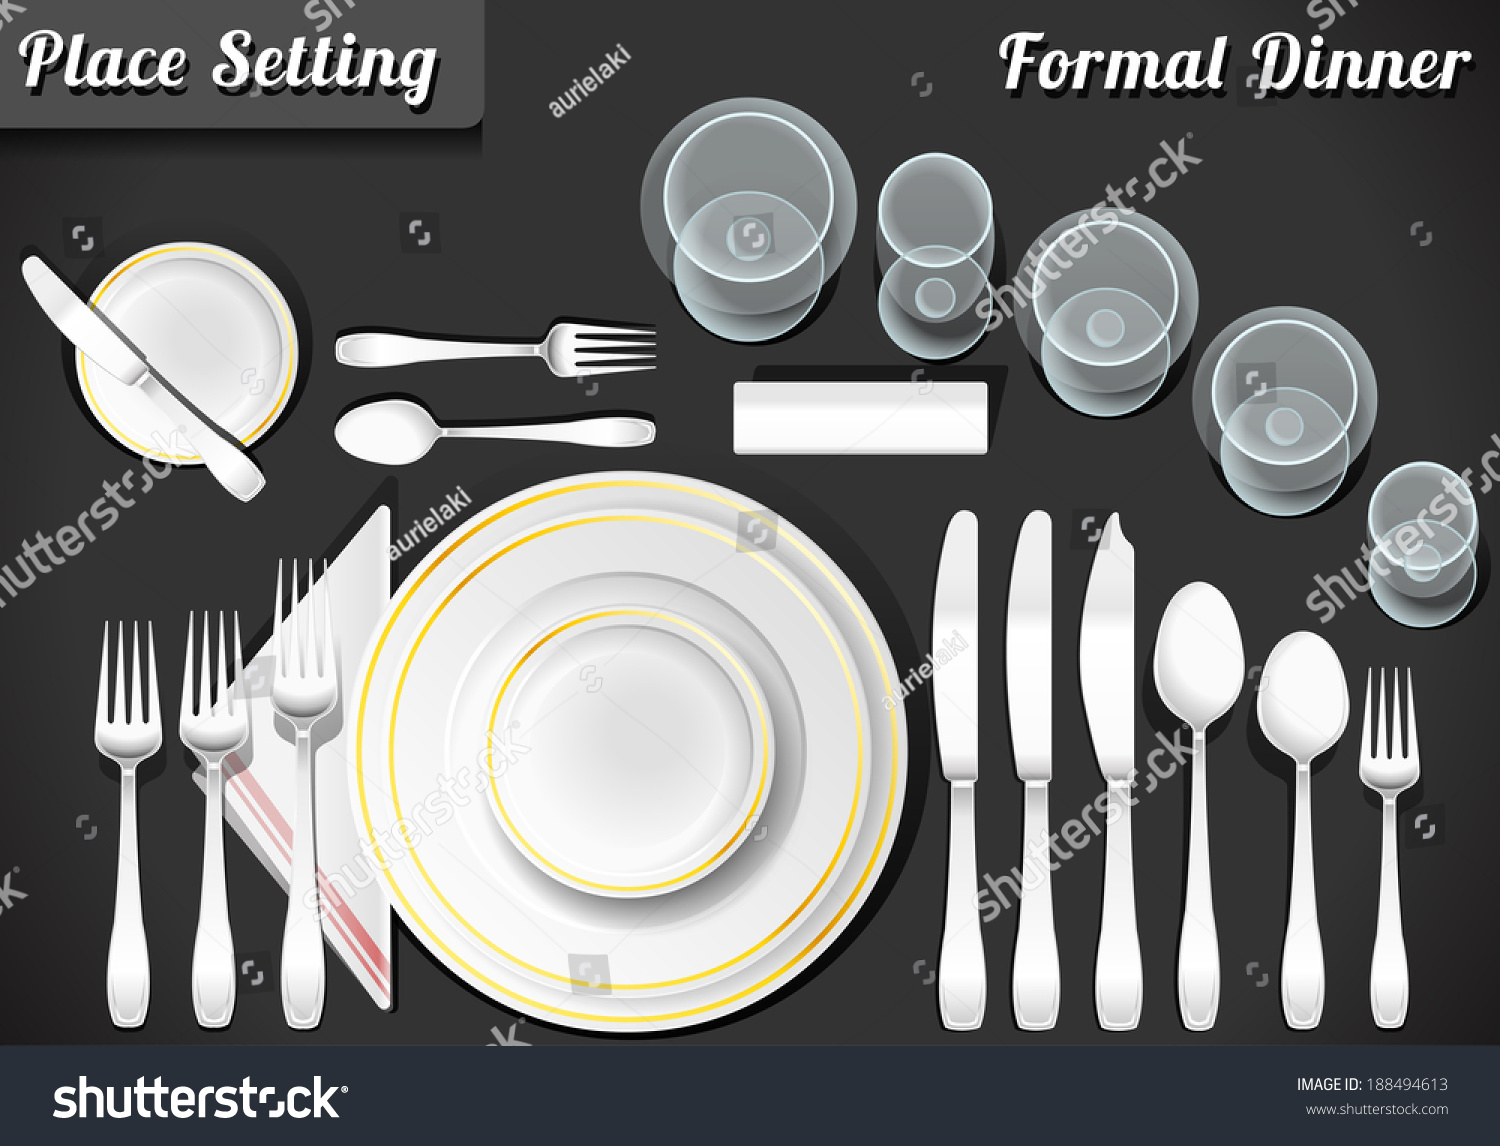 banquet table set up diagram 2005 dodge durango factory radio wiring setting place formal placemat vectores en